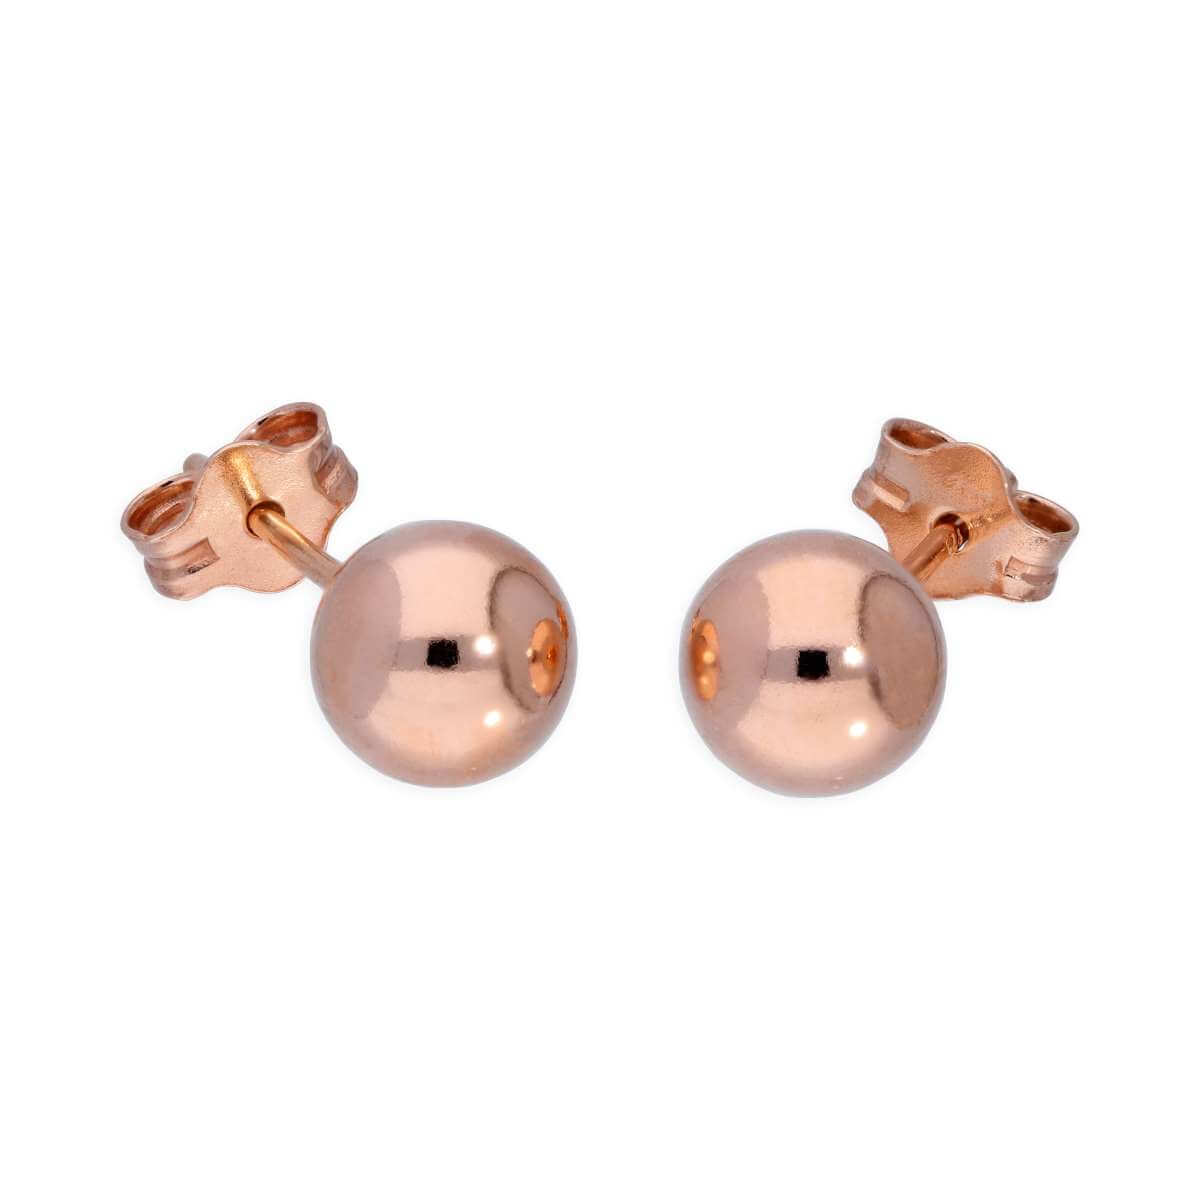 Rose Gold Plated Sterling Silver Lightweight 6mm Ball Stud Earrings